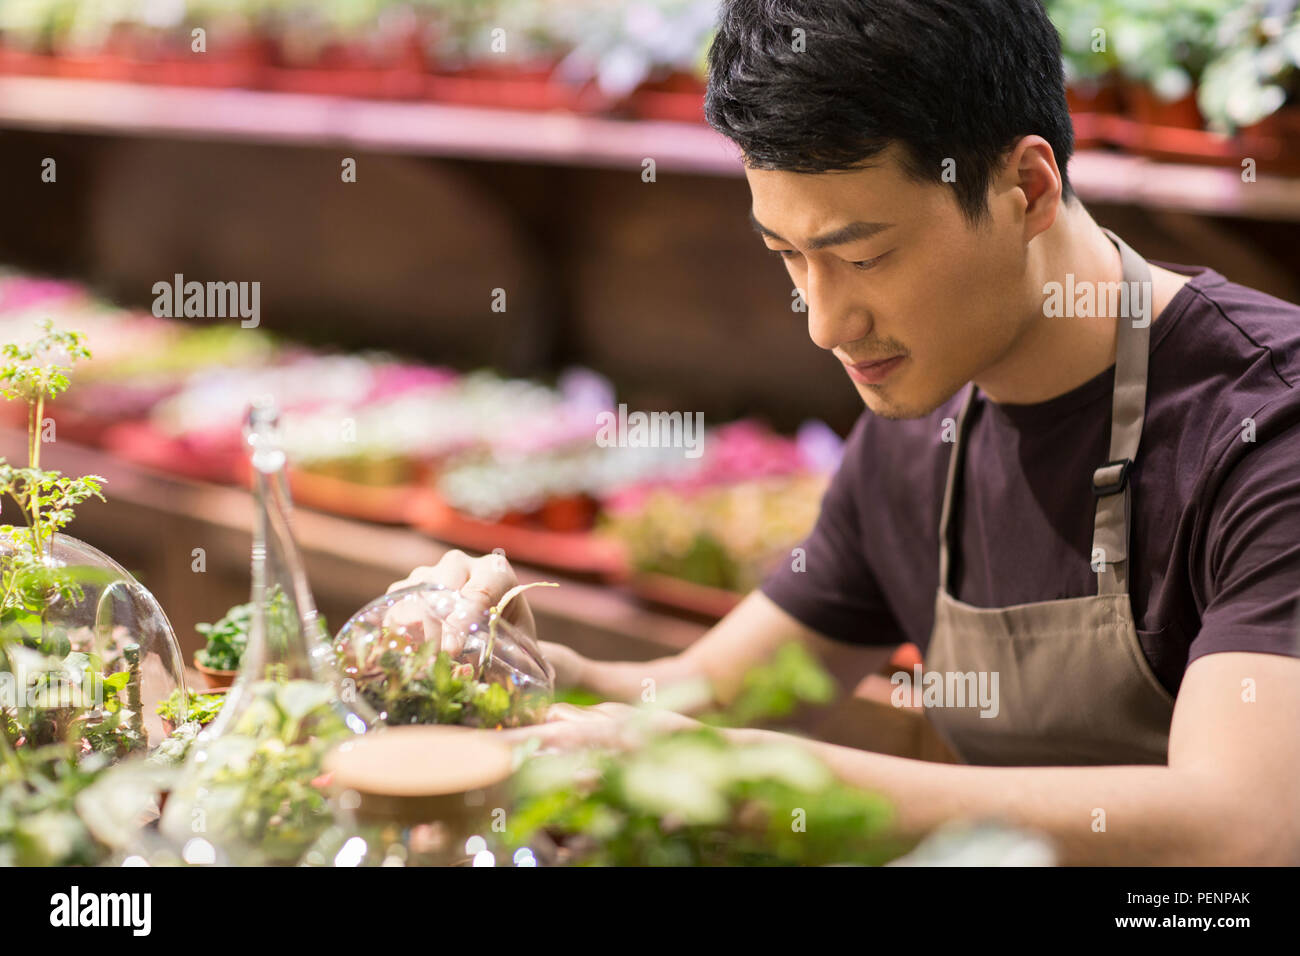 Young man working in plant shop - Stock Image